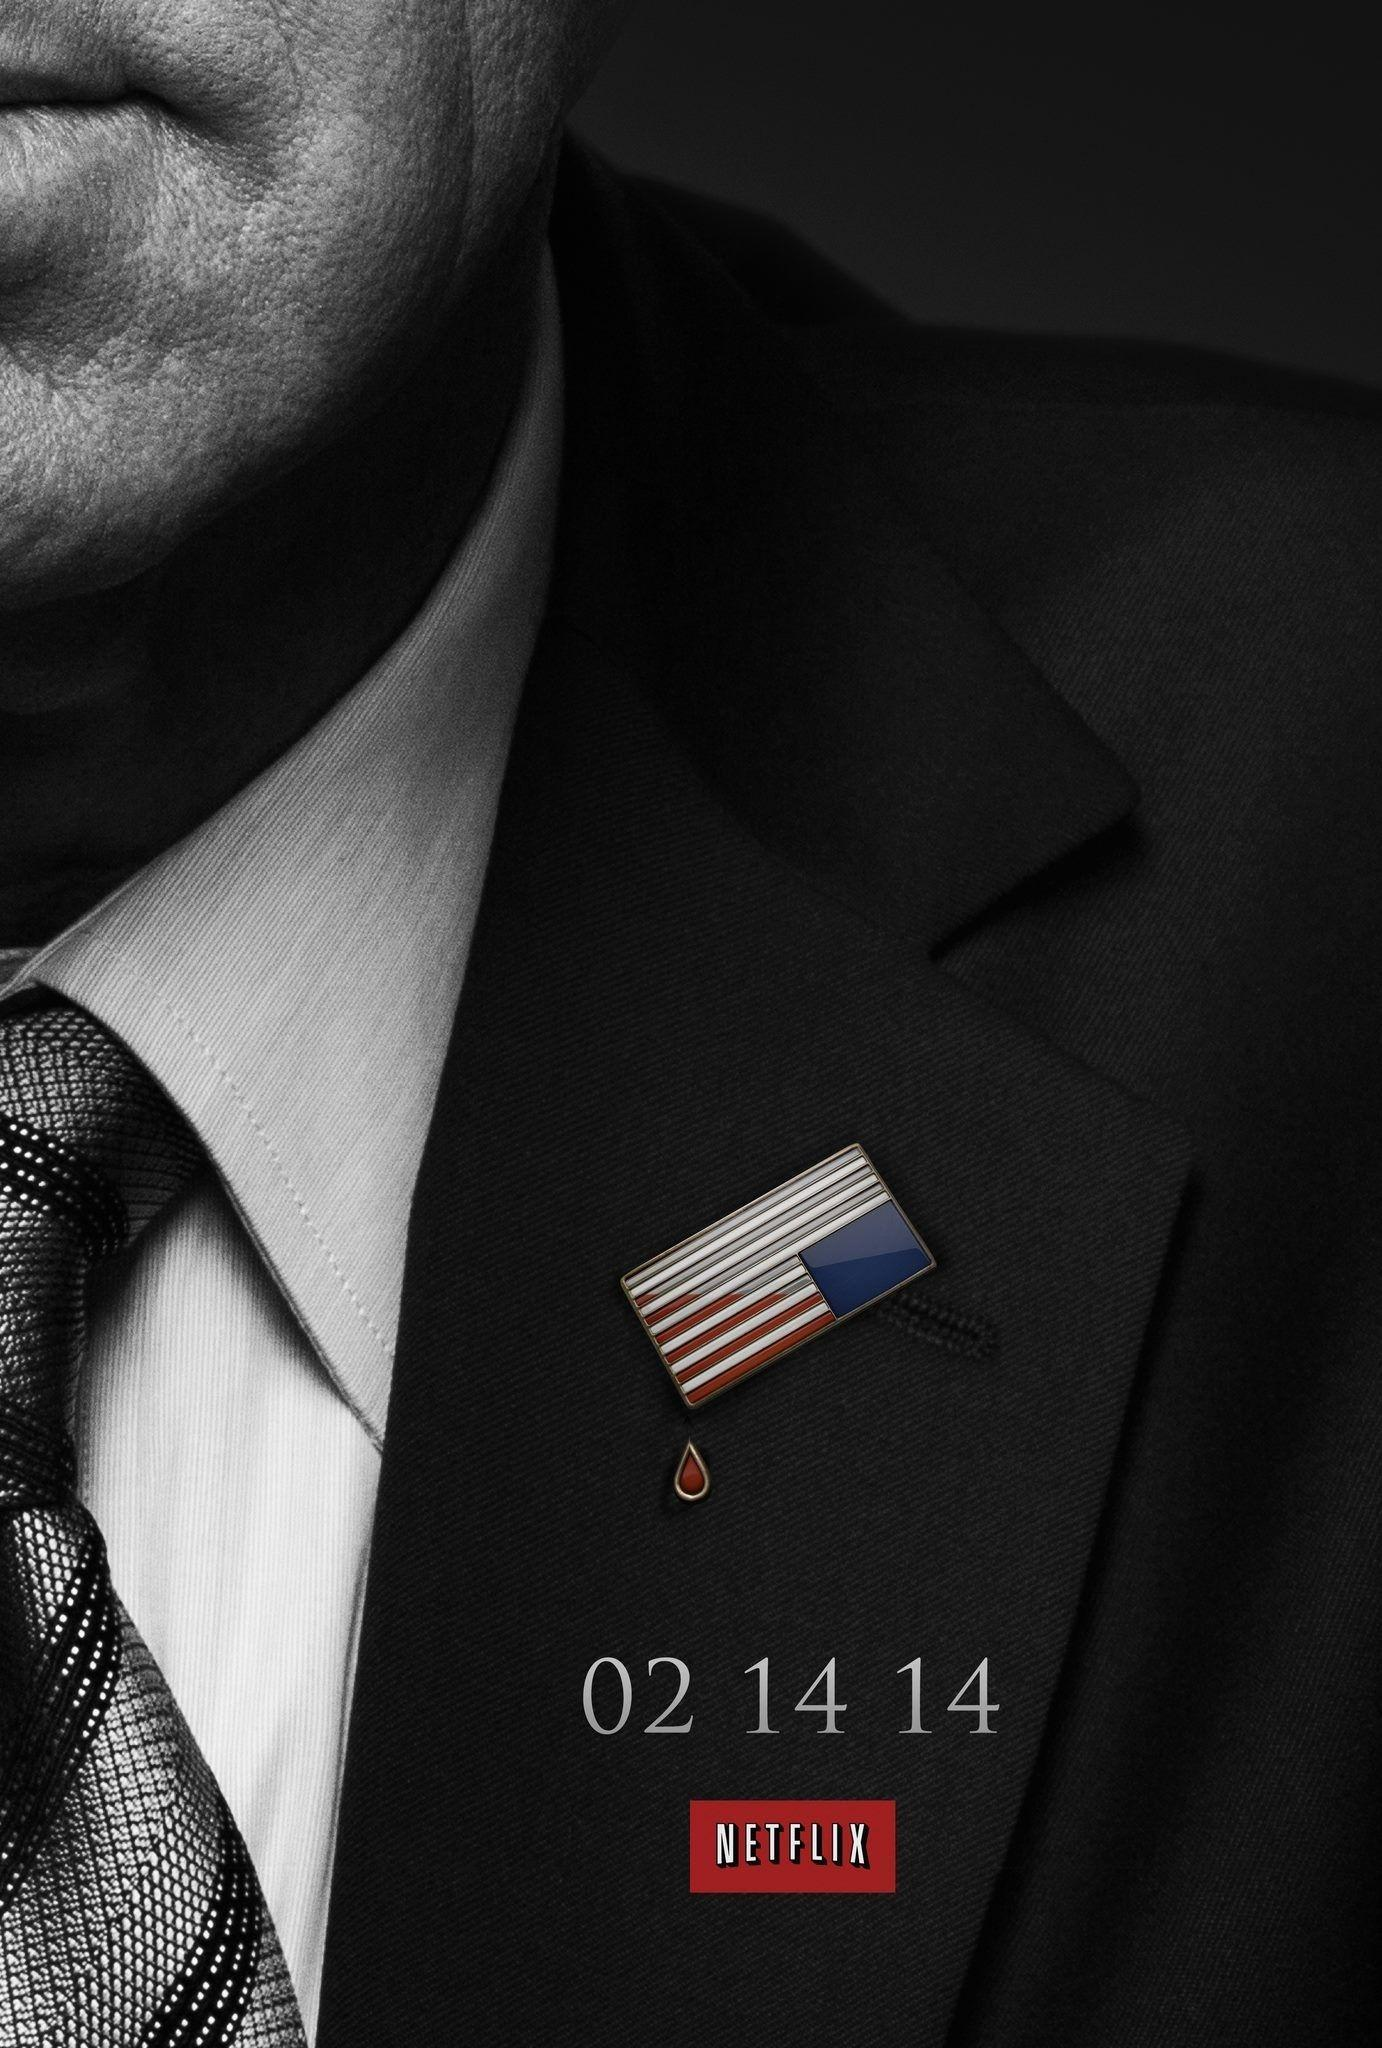 House Of Cards Wallpapers for Iphone 7, Iphone 7 plus, Iphone 6 plus